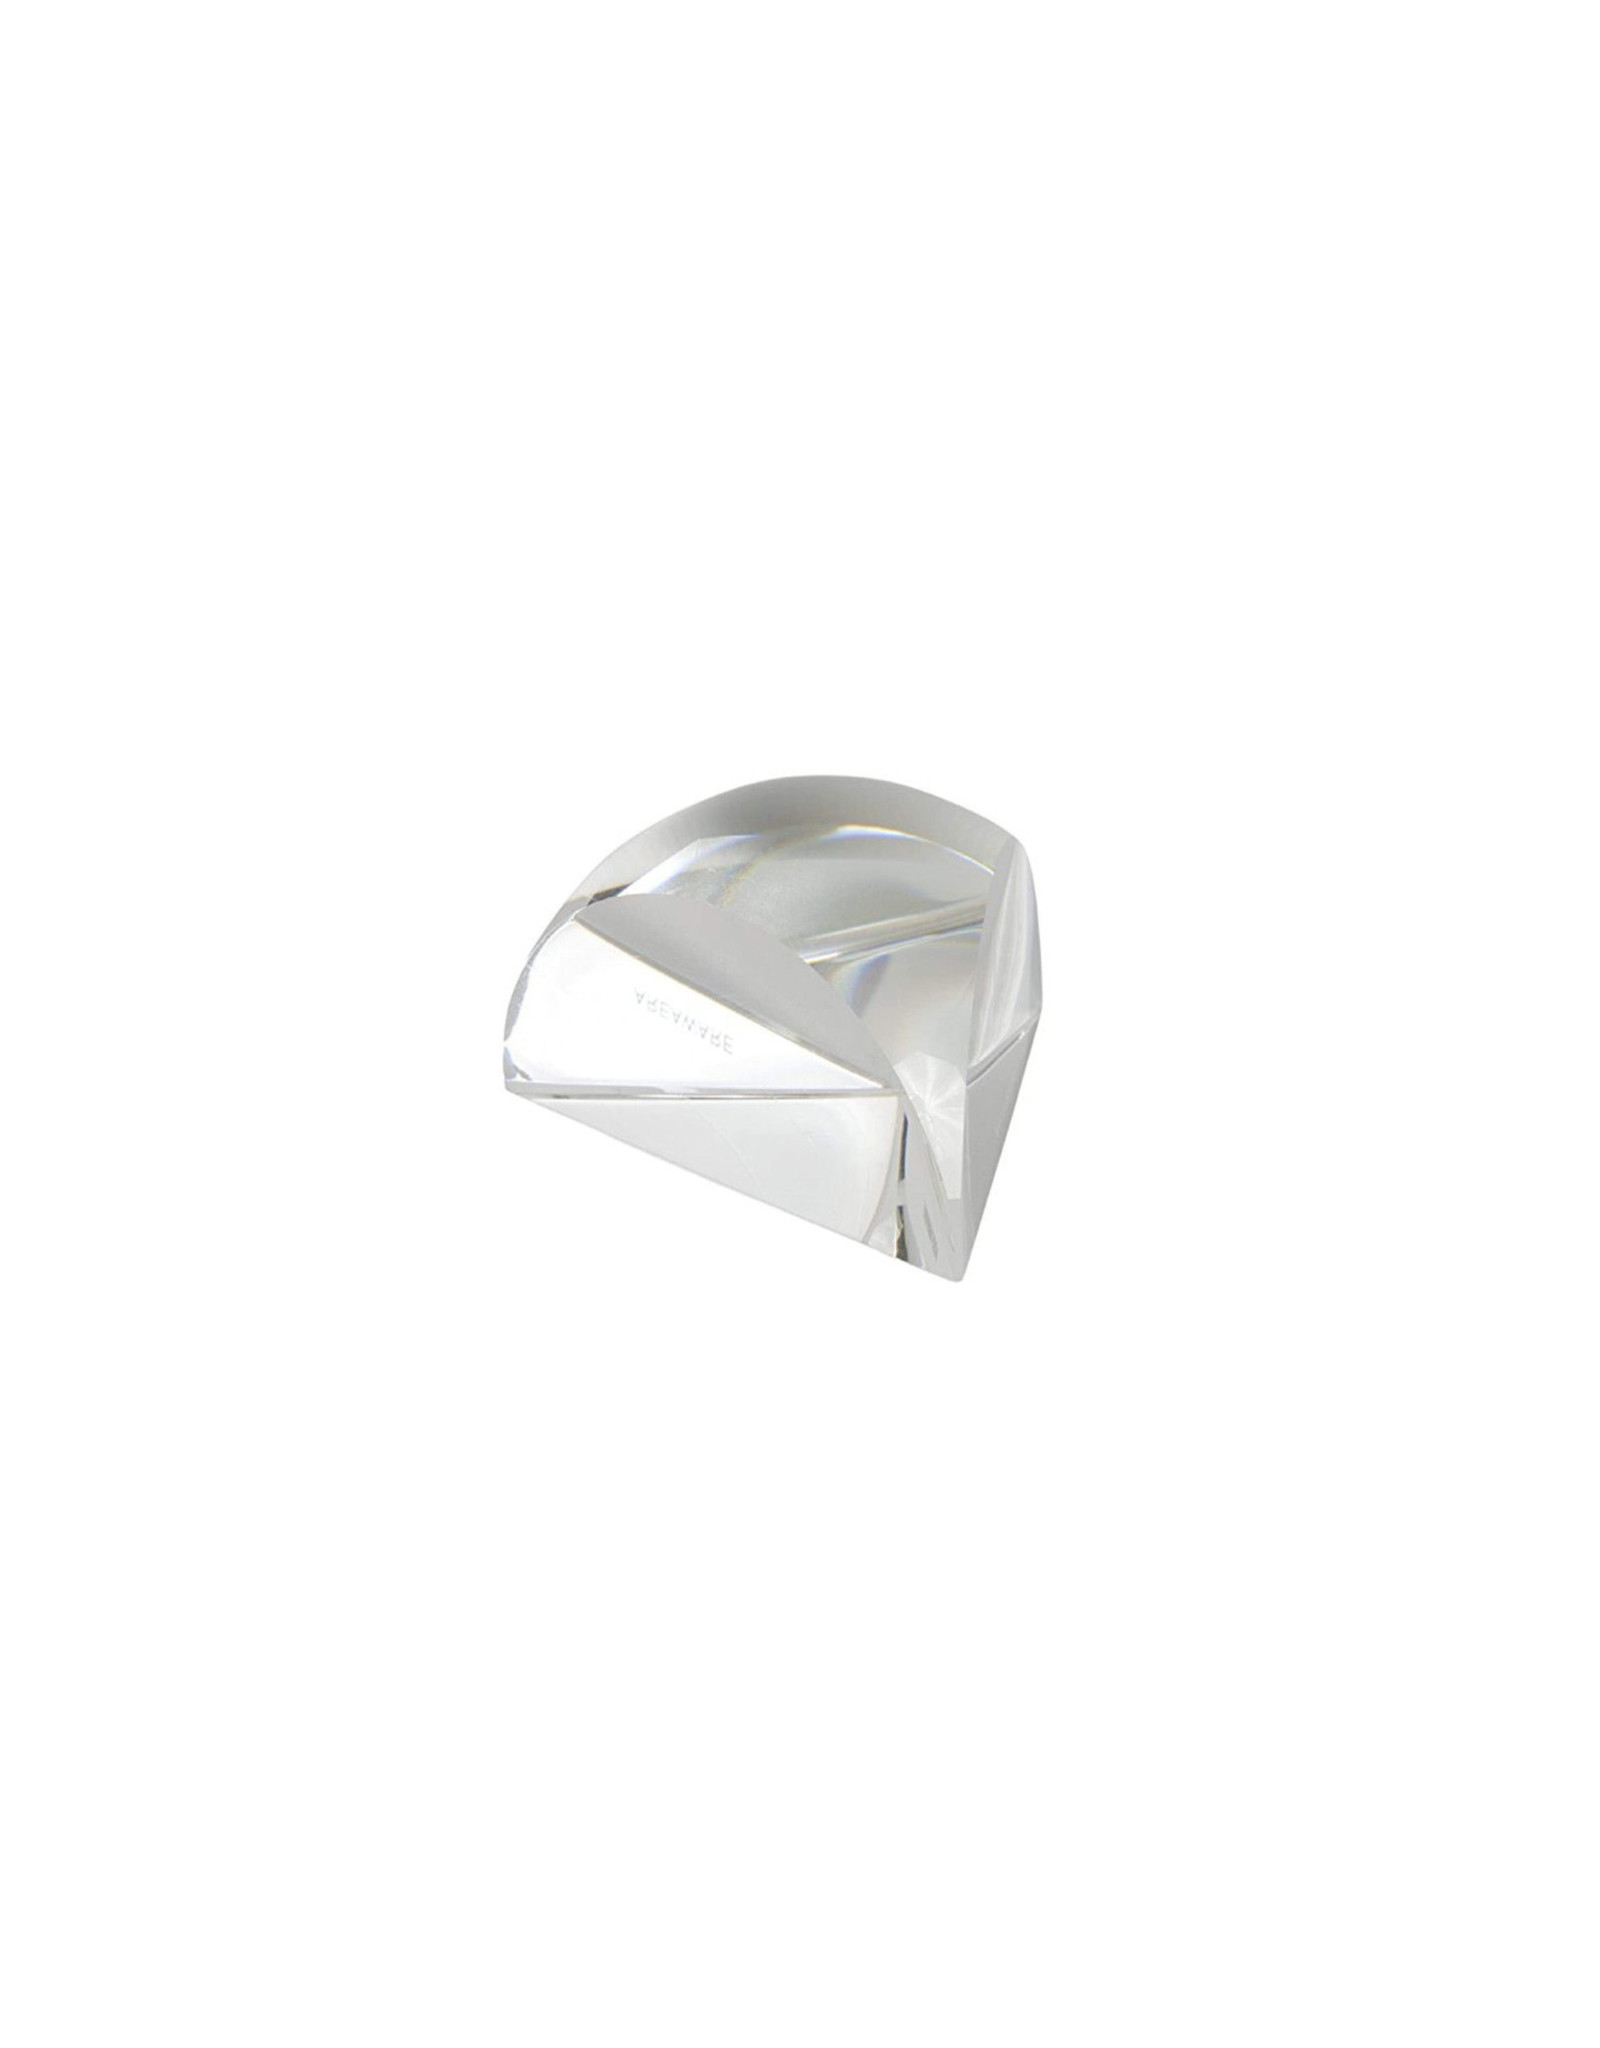 Areaware Prism Magnifier Small